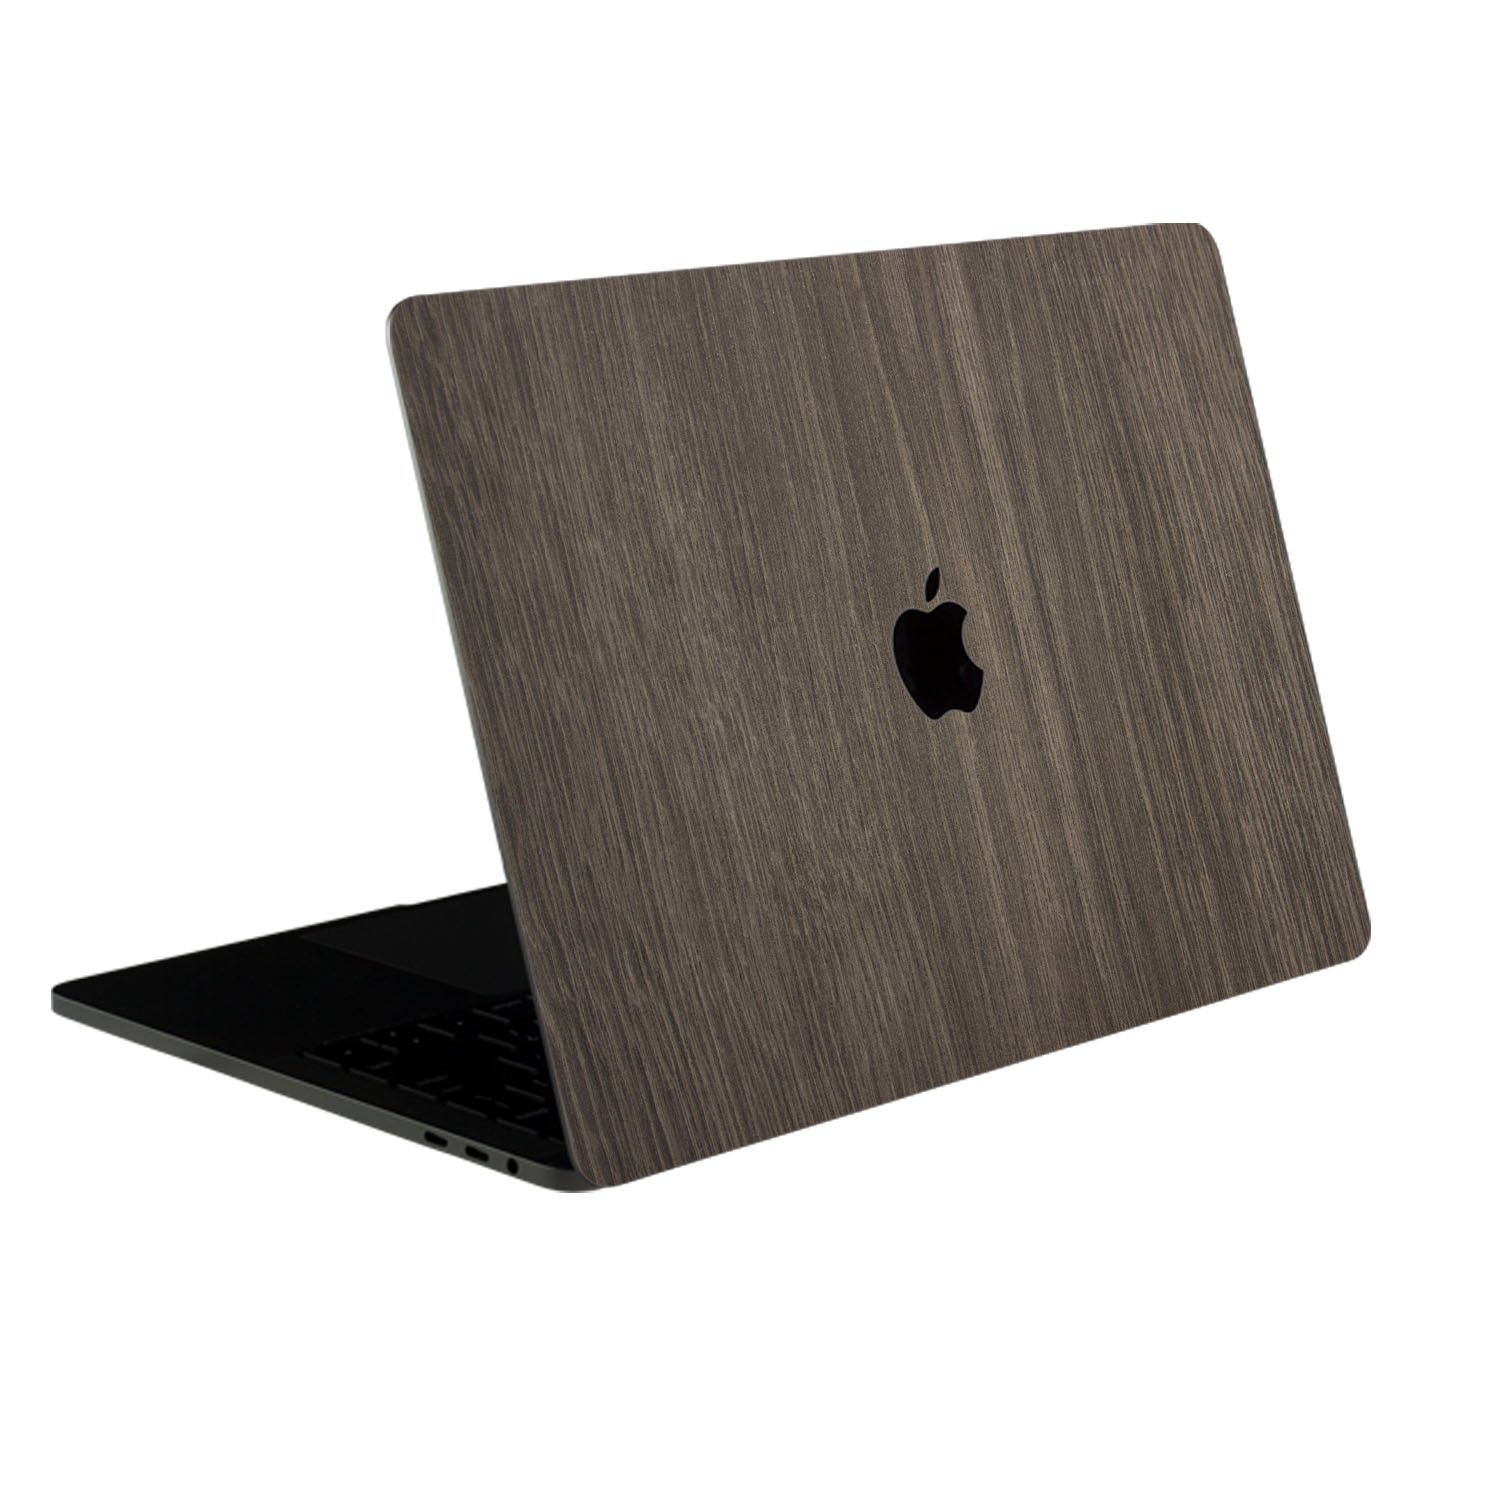 SOJITEK Brown Wood Texture 4 in 1 Full Size 360° Protector Skin Decals Sticker MacBook Pro 13 Inch 2016 to 2019 Model with Without Touch Bar ID A1706 A1708 A1989 Black Keyboard Cover